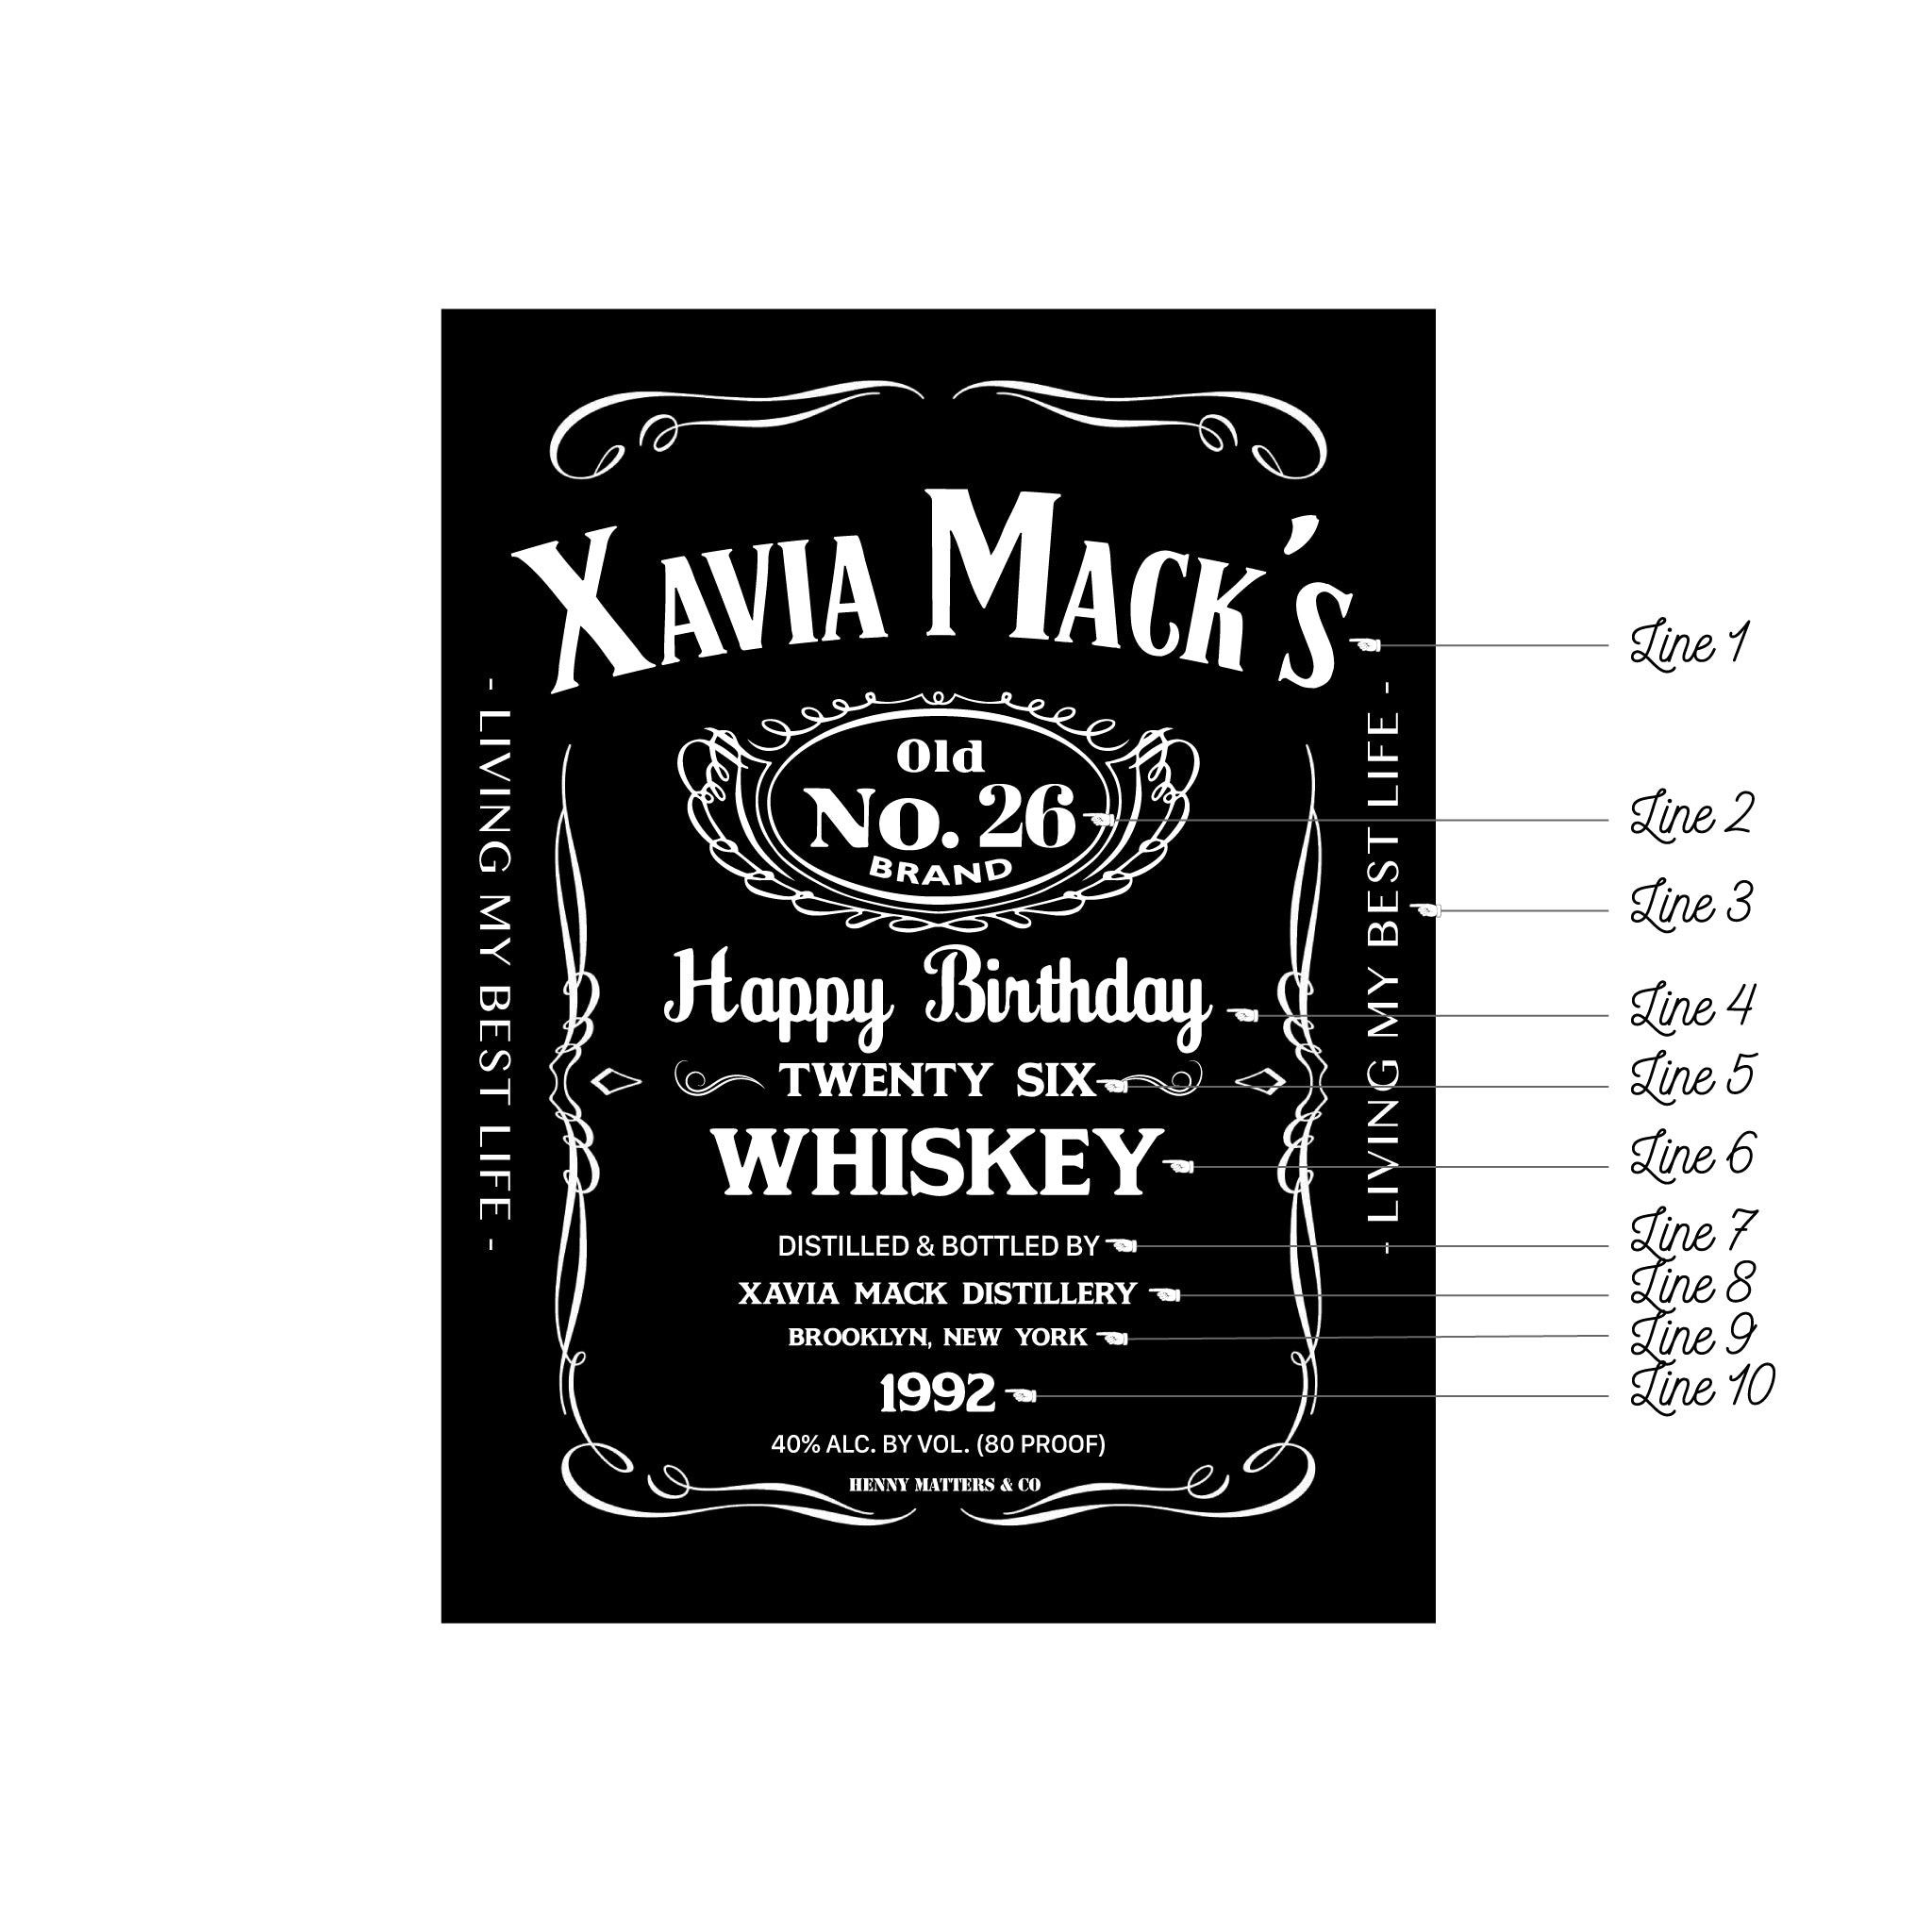 Custom Jack Daniels Label (Half Body)